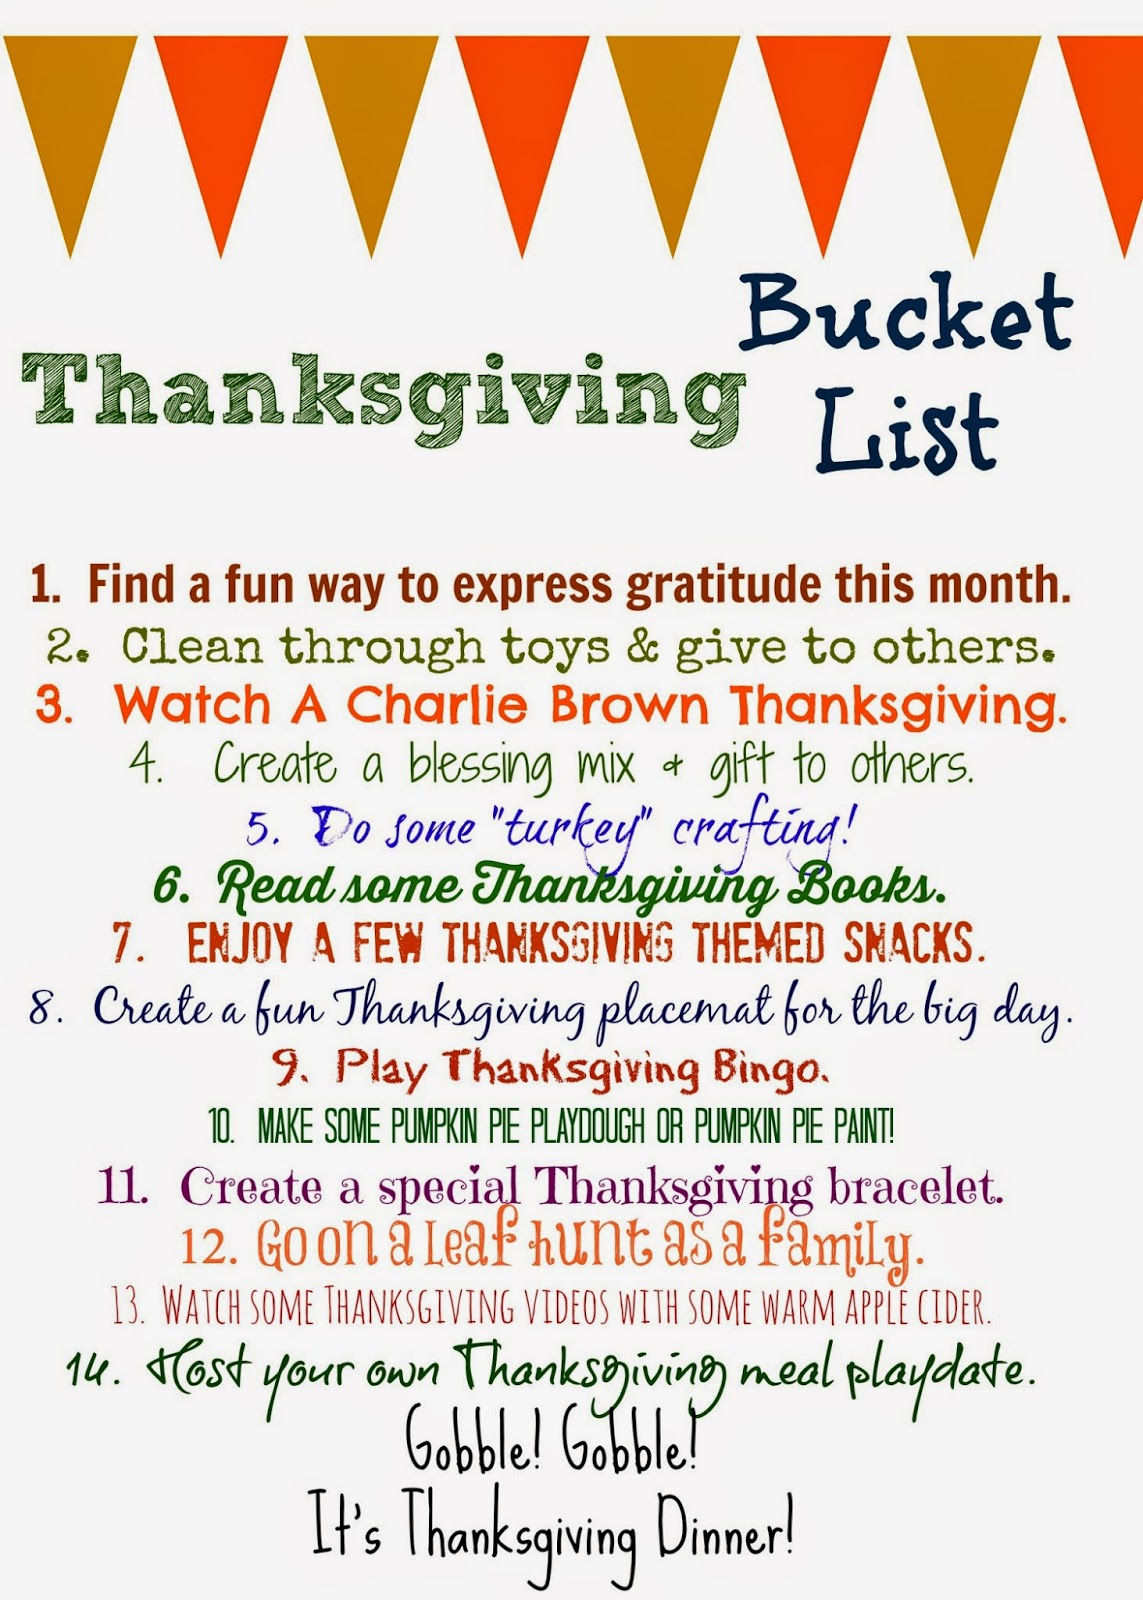 Thanksgiving Bucket List Free Printable